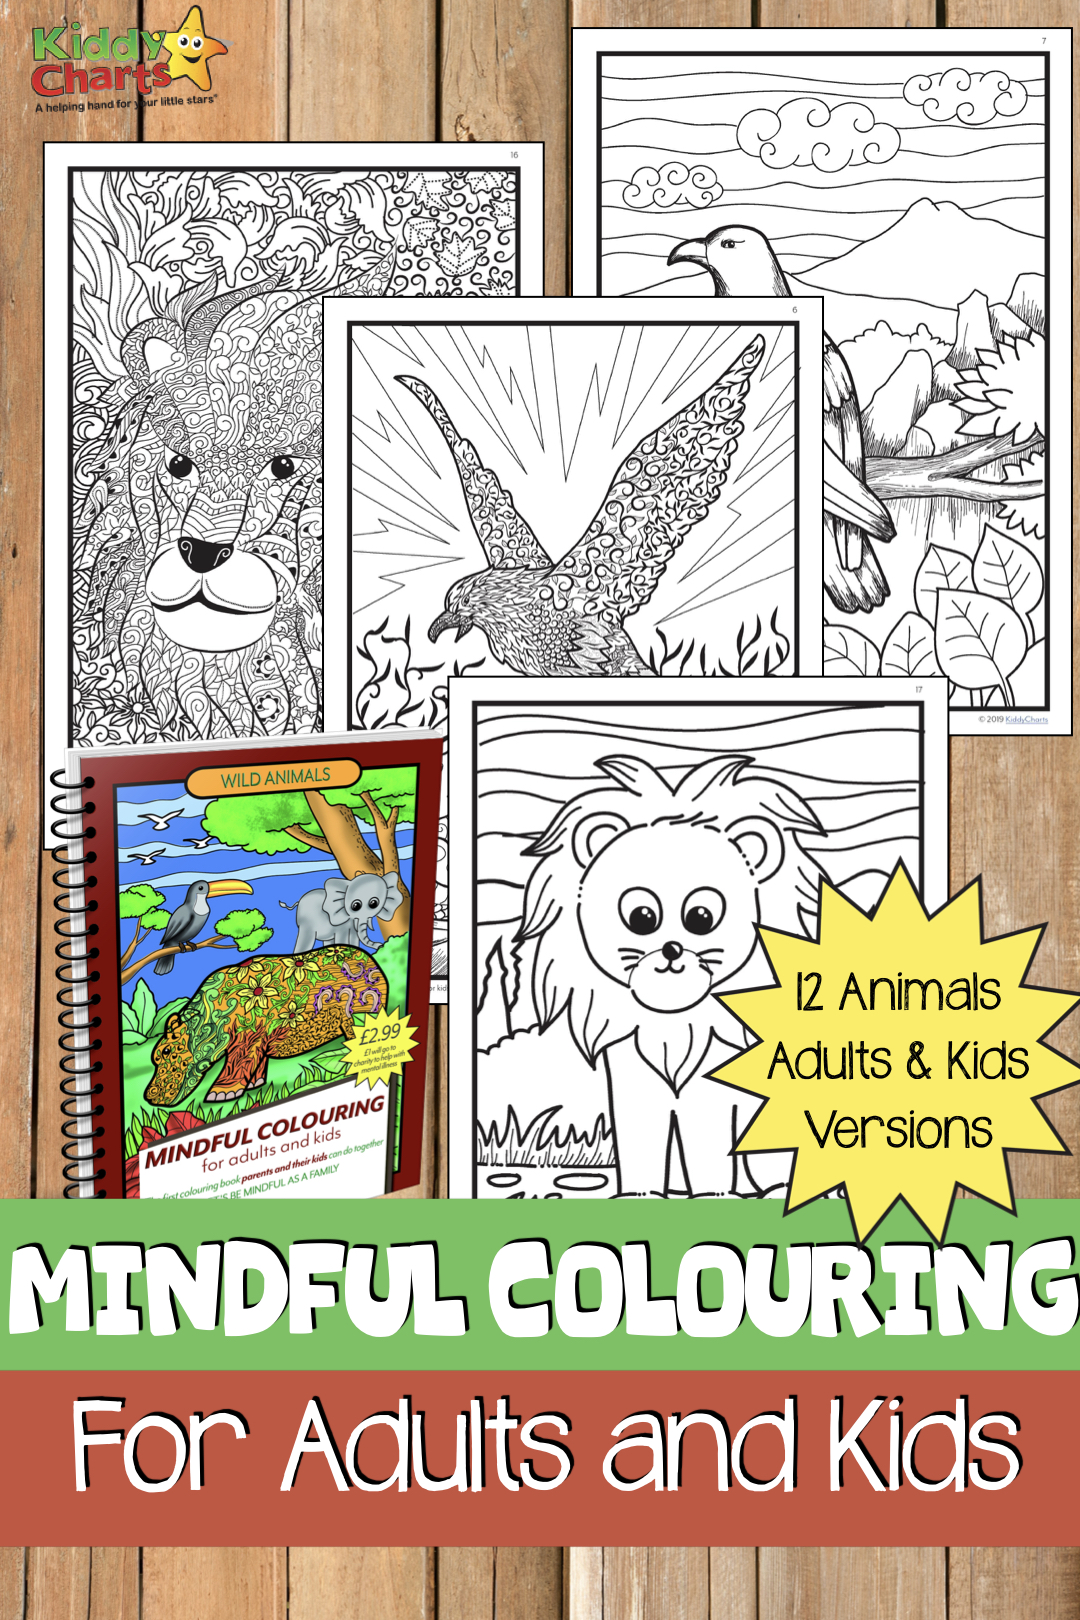 Enjoy 24 pages of colouring fun with our wild animals mindfulness colouring book - all for the price of a coffee. £1 of which goes to Rethink, the mental health charity.